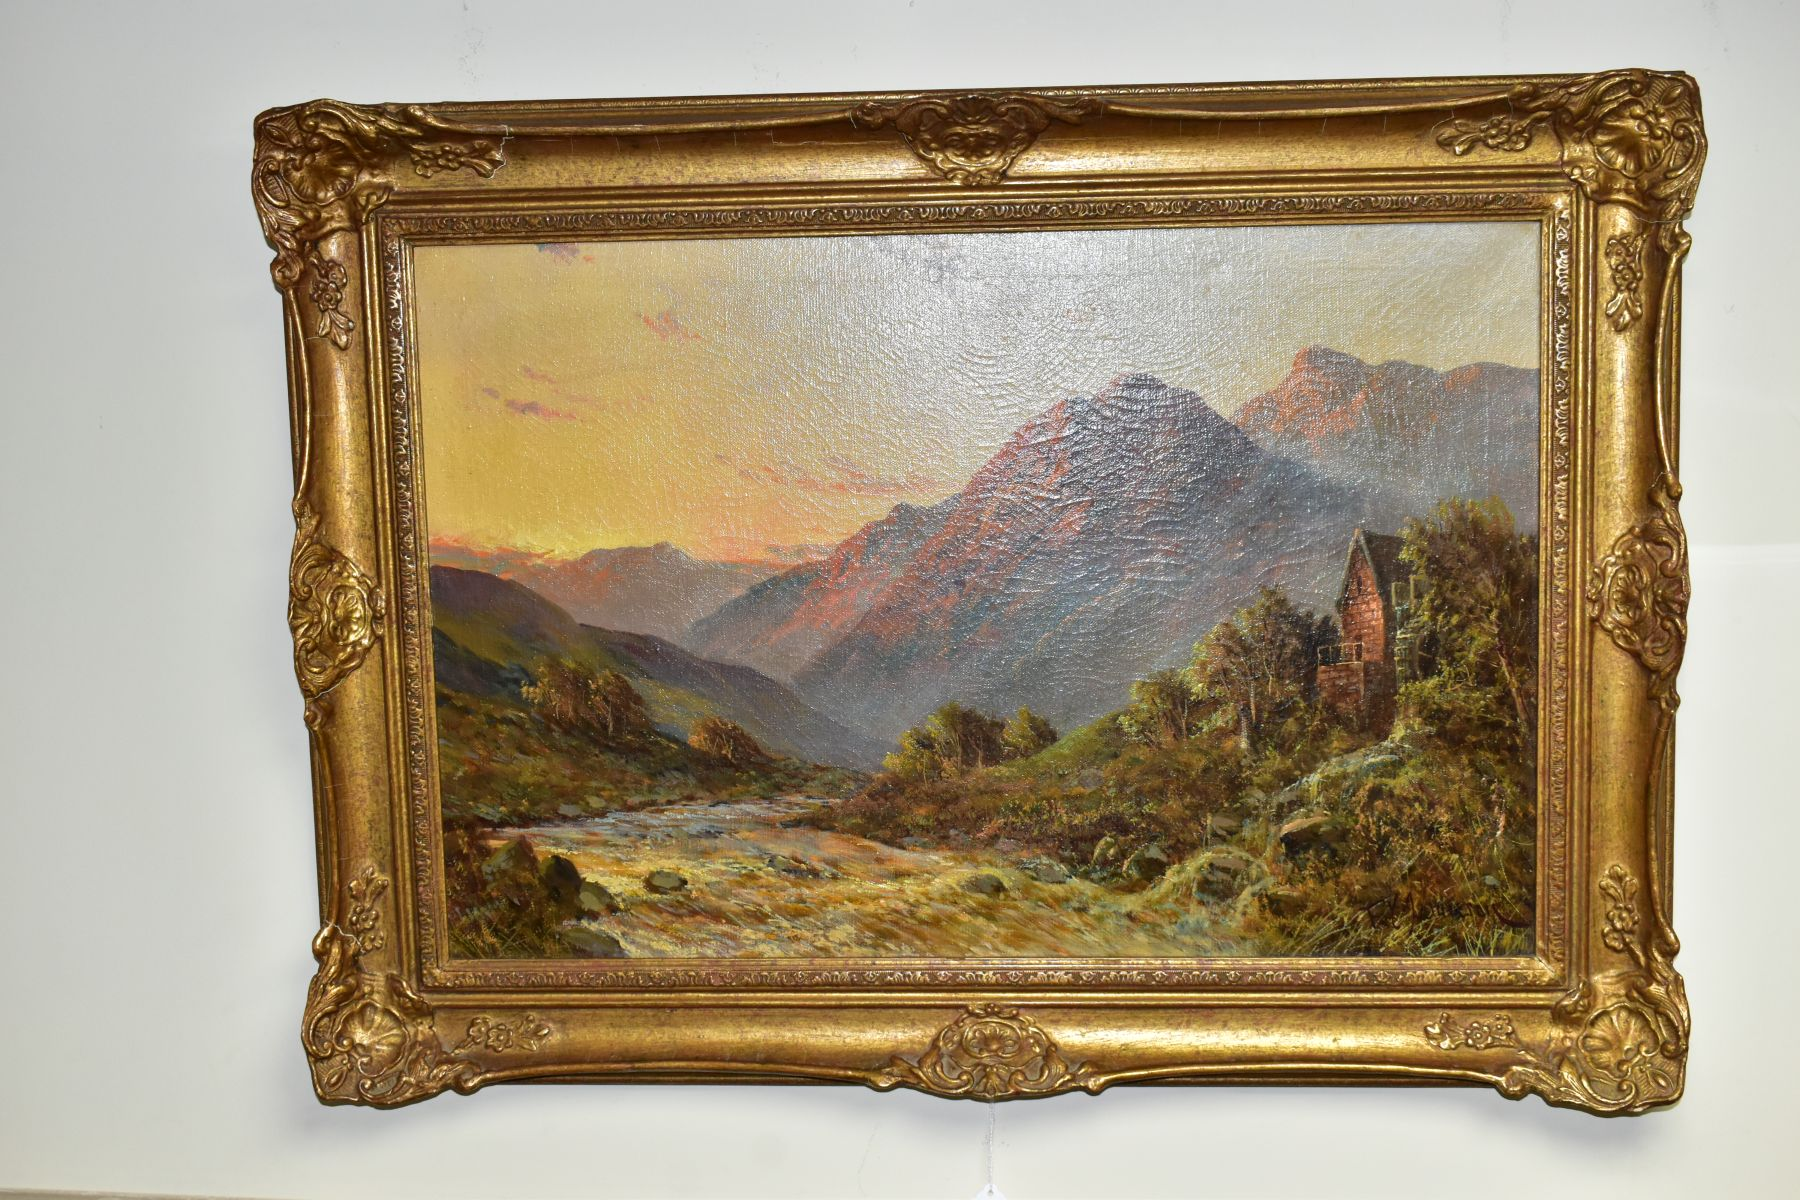 FRANCIS E JAMIESON (1895-1950) 'ALLAN WATERS NR STIRLING' a Scottish mountainous landscape with